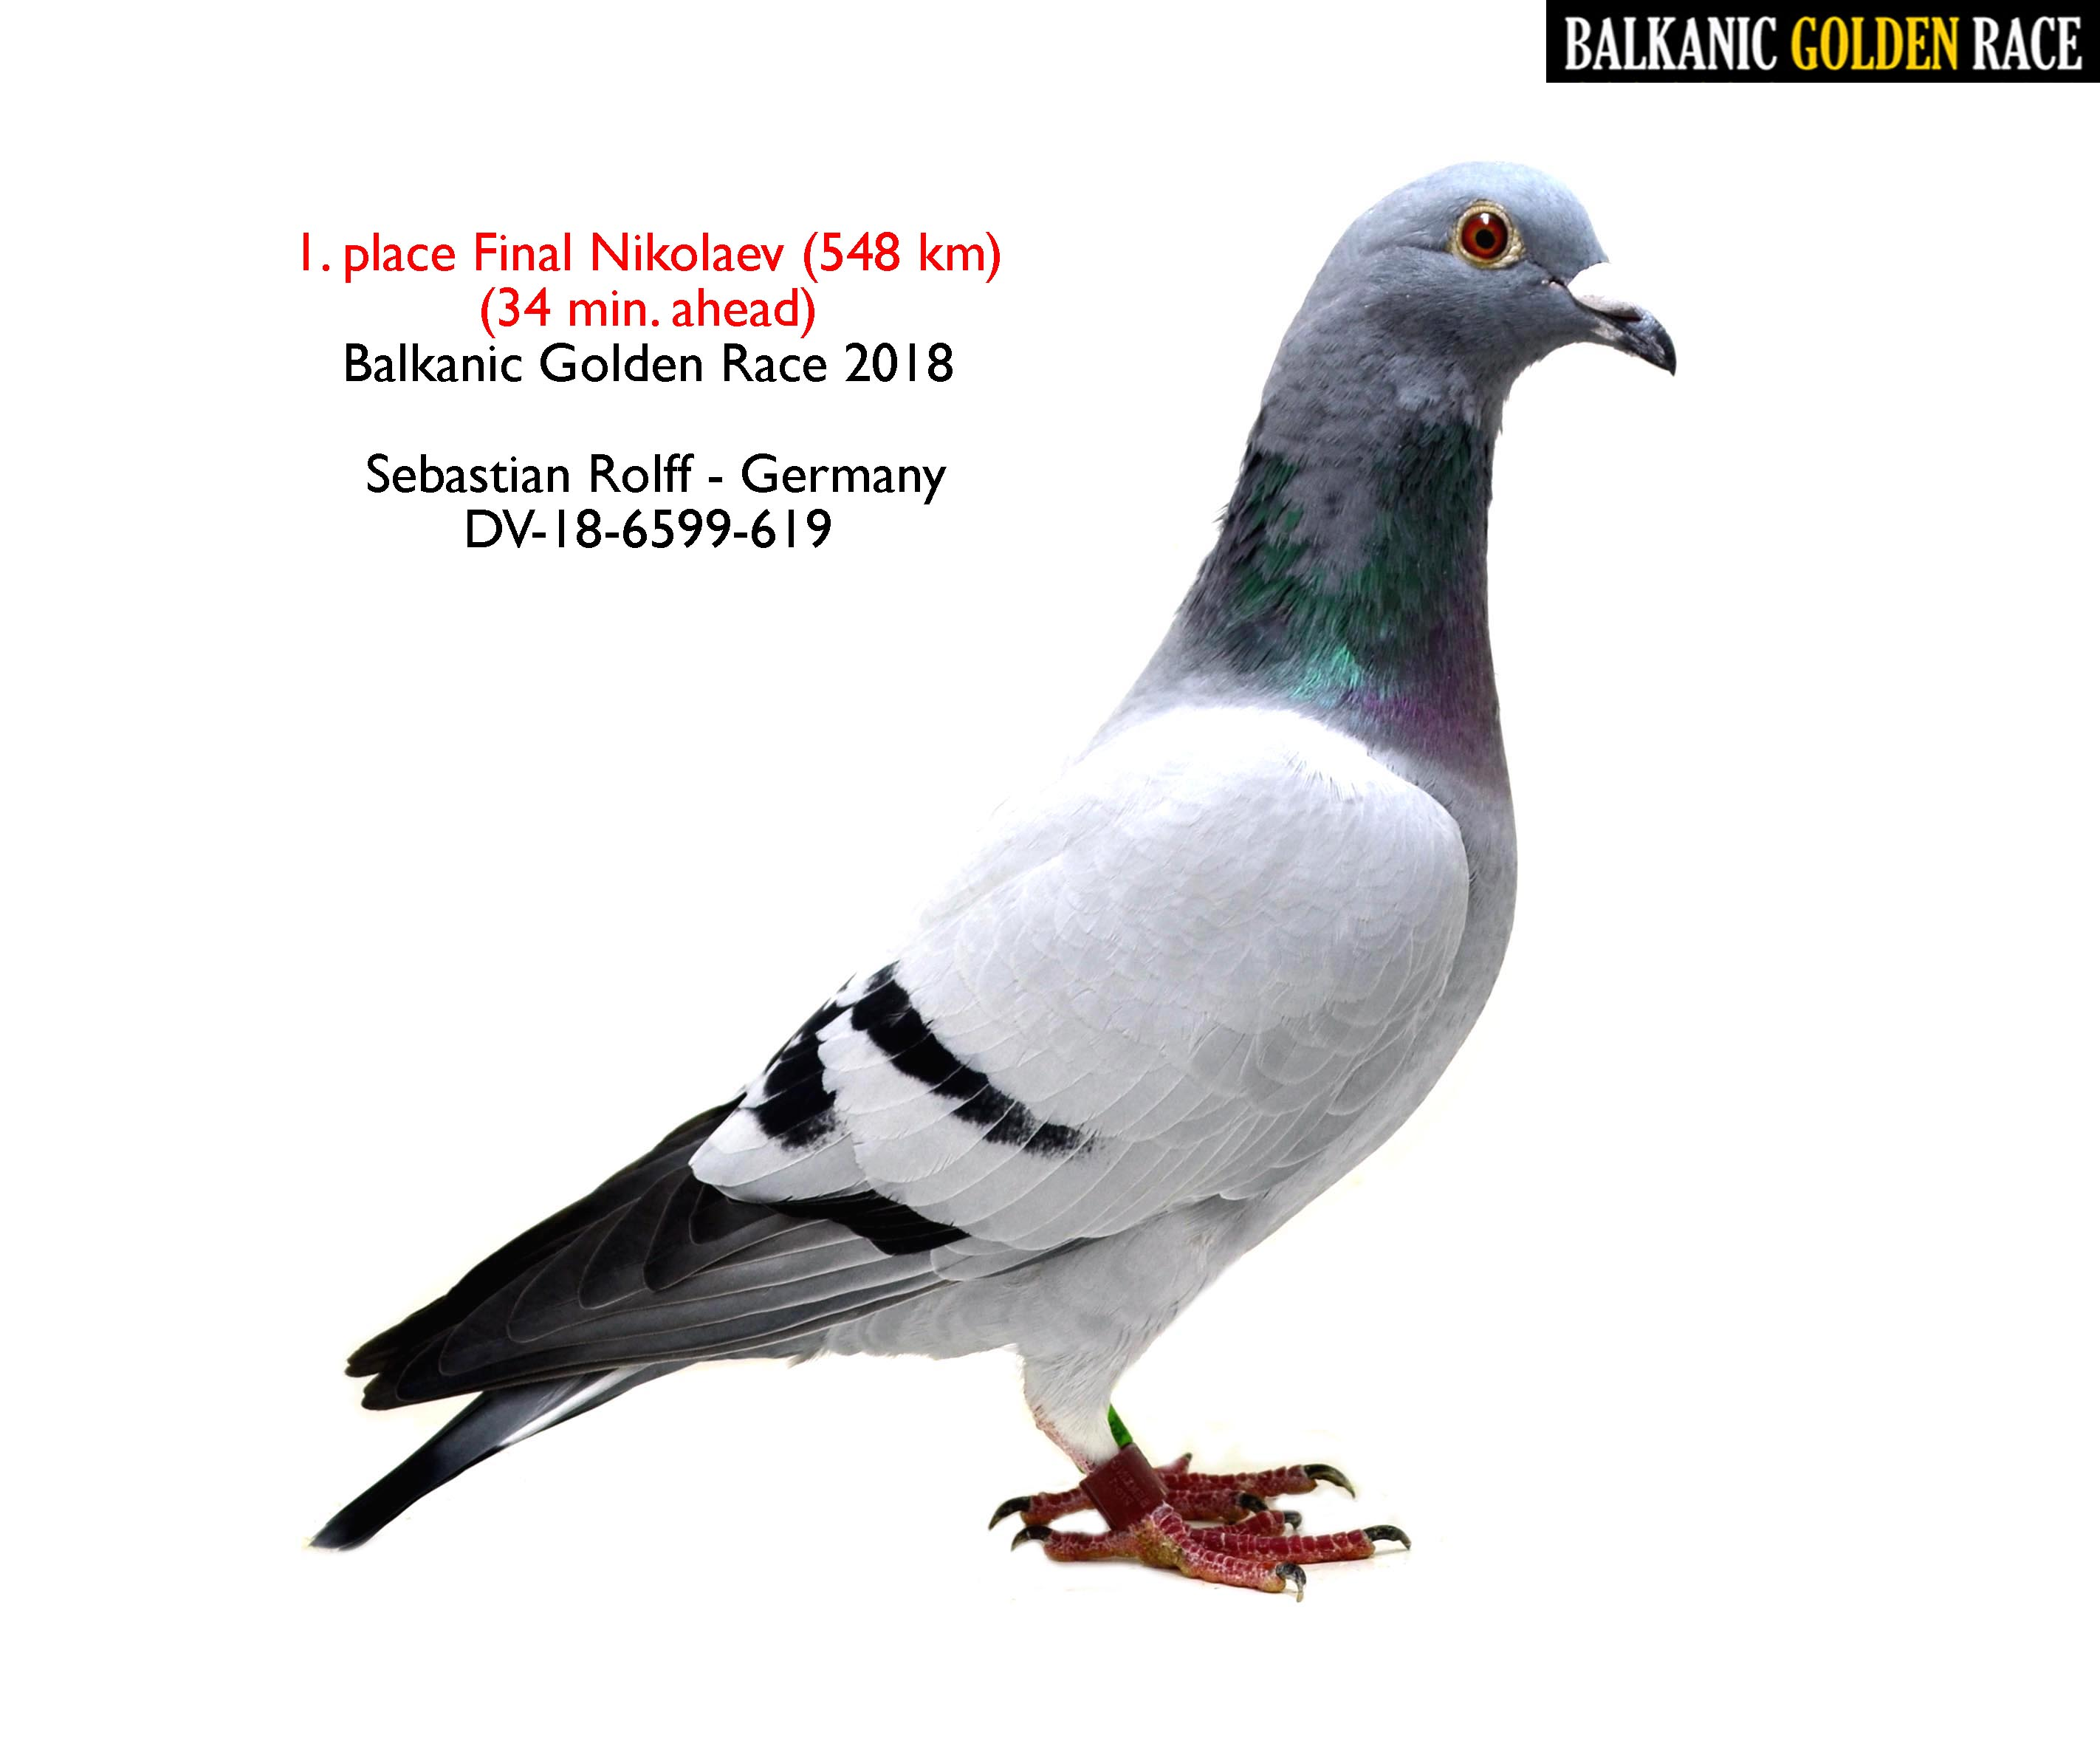 DV 4858 18 500 M - Full brother 2 Ace pigeon Million Dollar Race; brother mother 1 final BGR